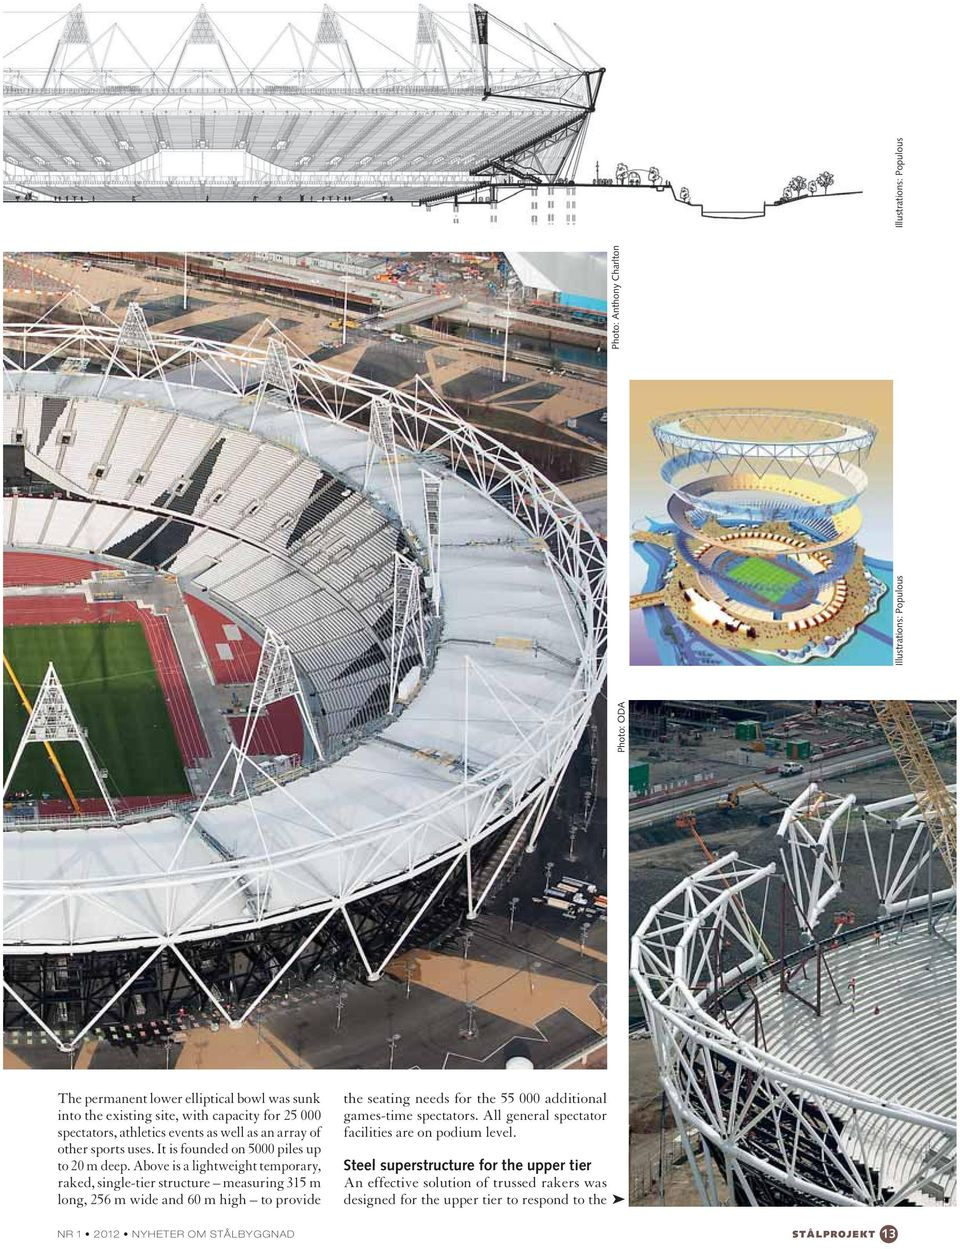 Above is a lightweight temporary, raked, single-tier structure measuring 315 m long, 256 m wide and 60 m high to provide the seating needs for the 55 000 additional